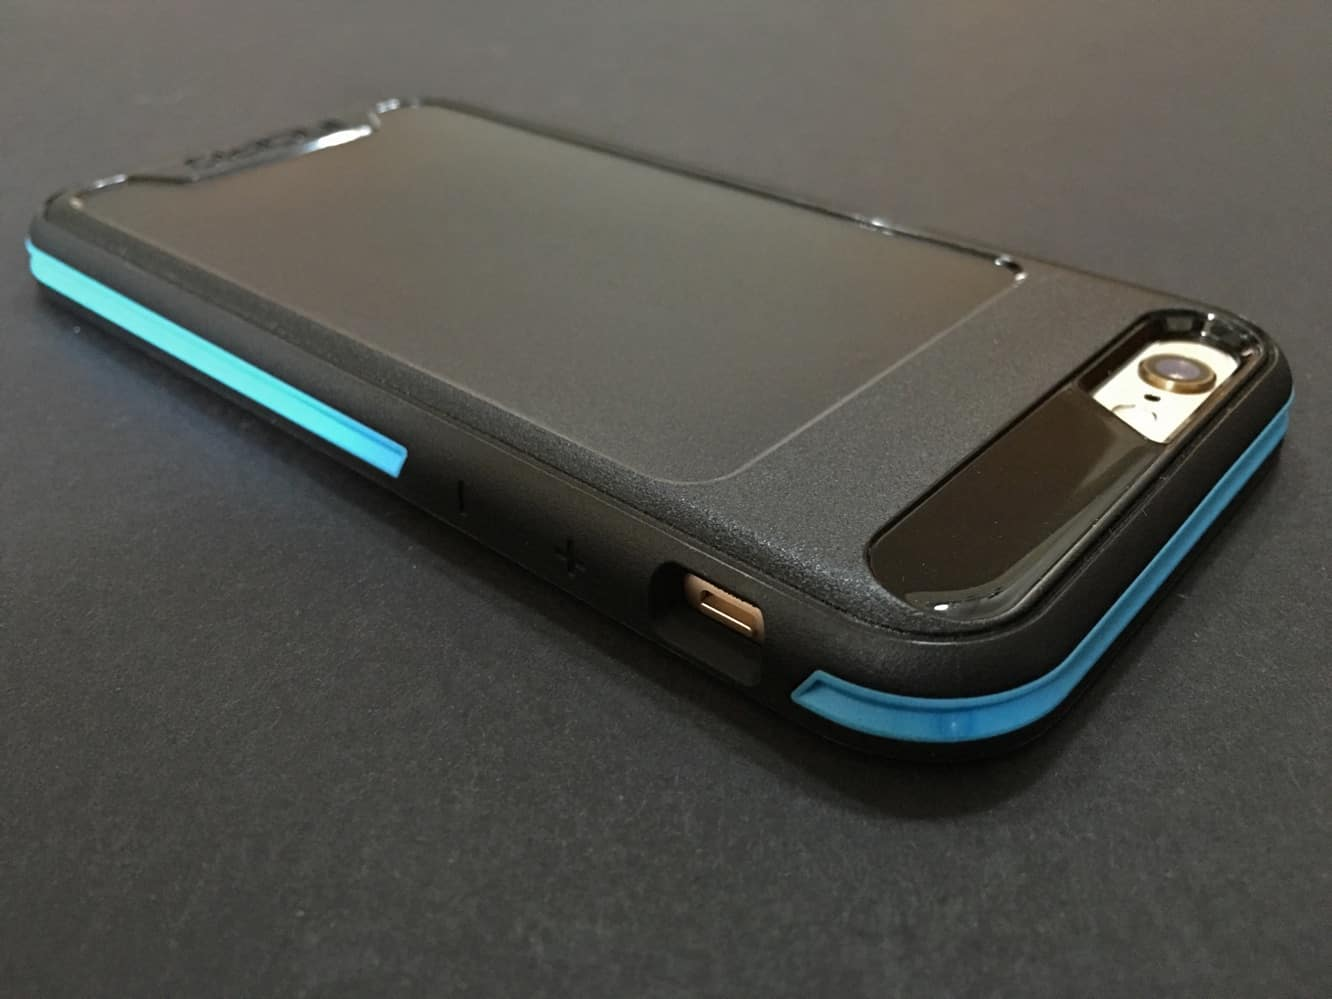 Review: Incipio Performance Series for iPhone 6/6s